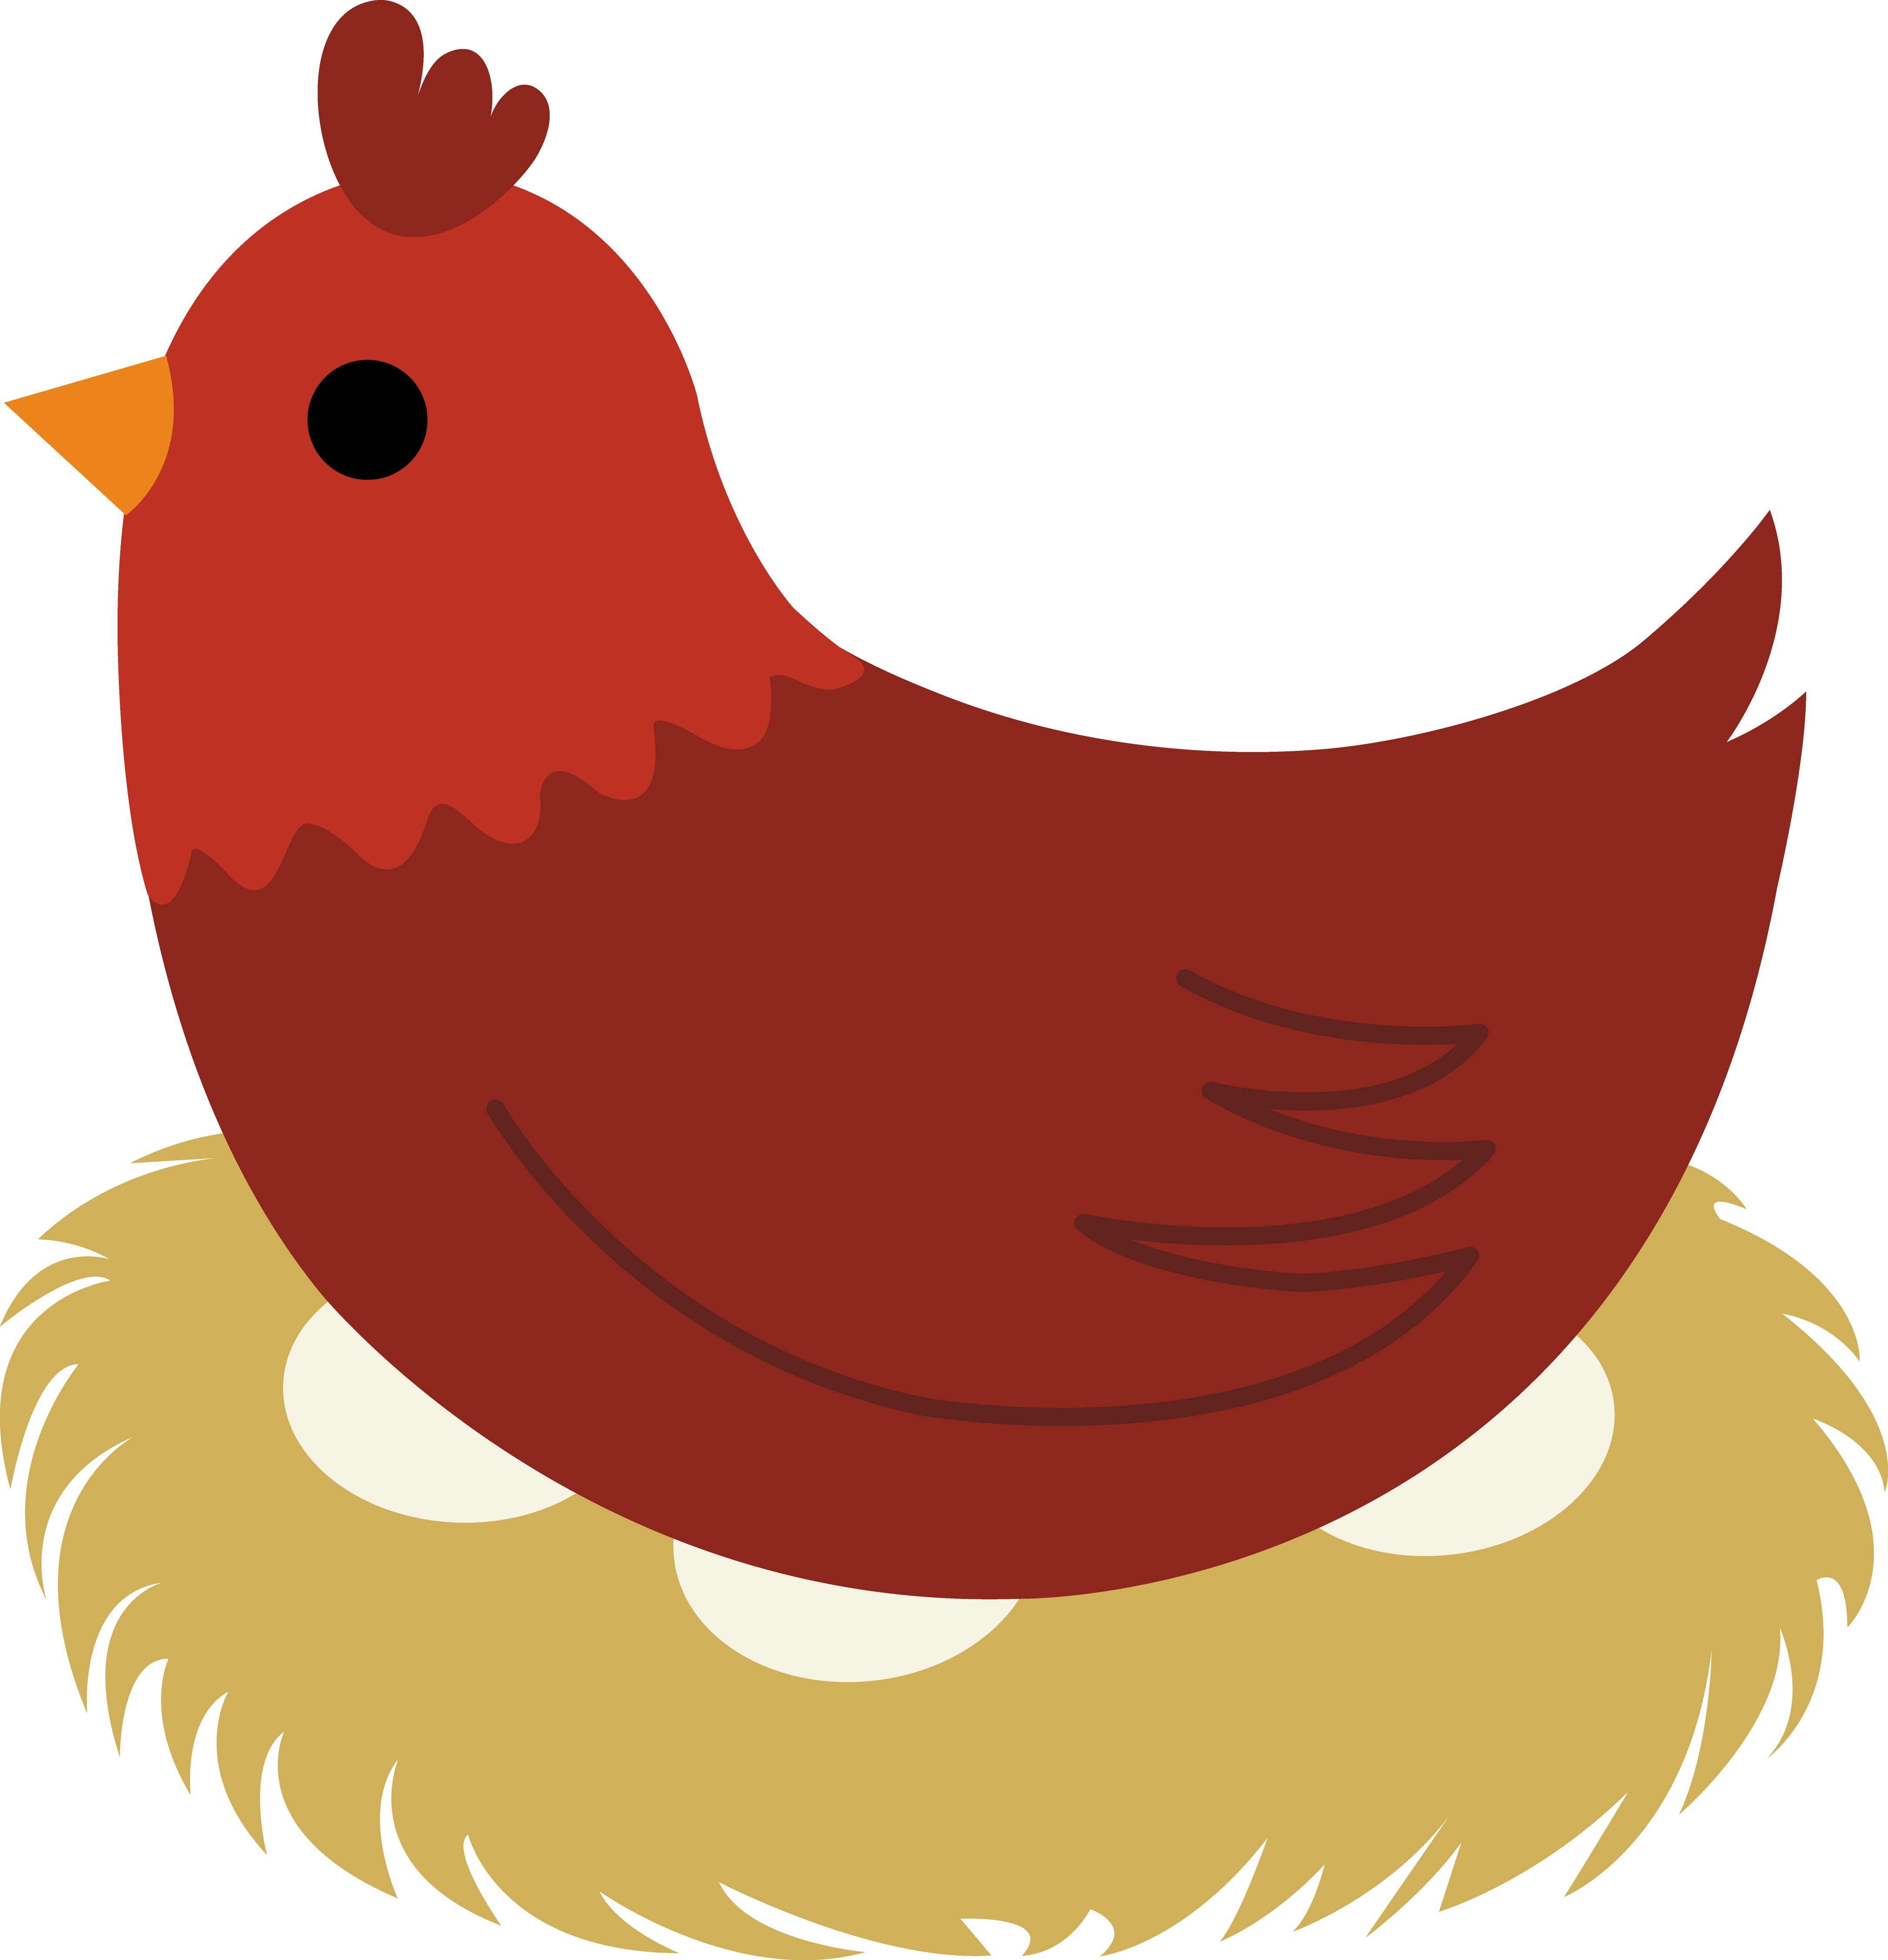 Cute Hen Clipart | Clipart Panda - Free Clipart Images